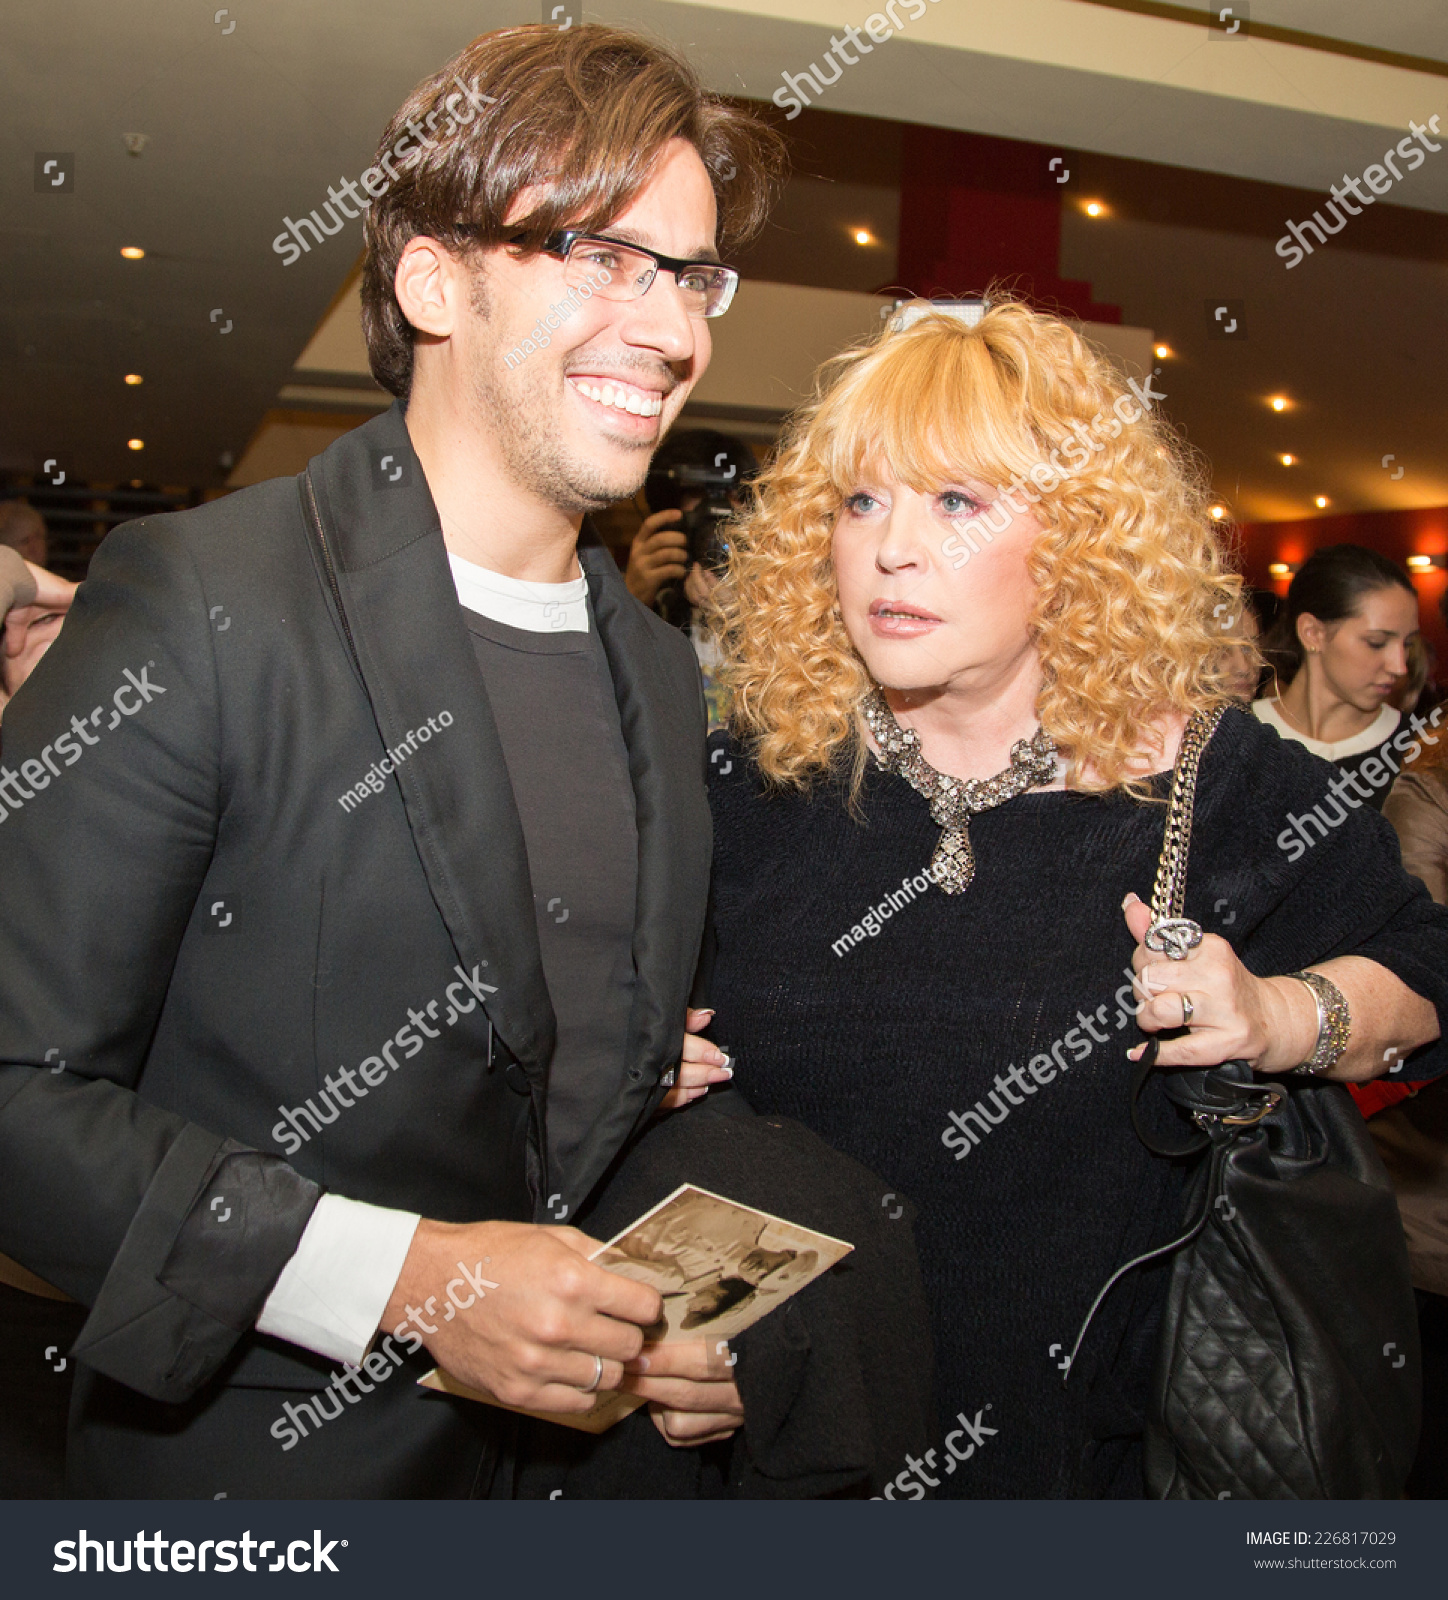 Galkin is building a theater for Pugacheva 08/01/2011 56